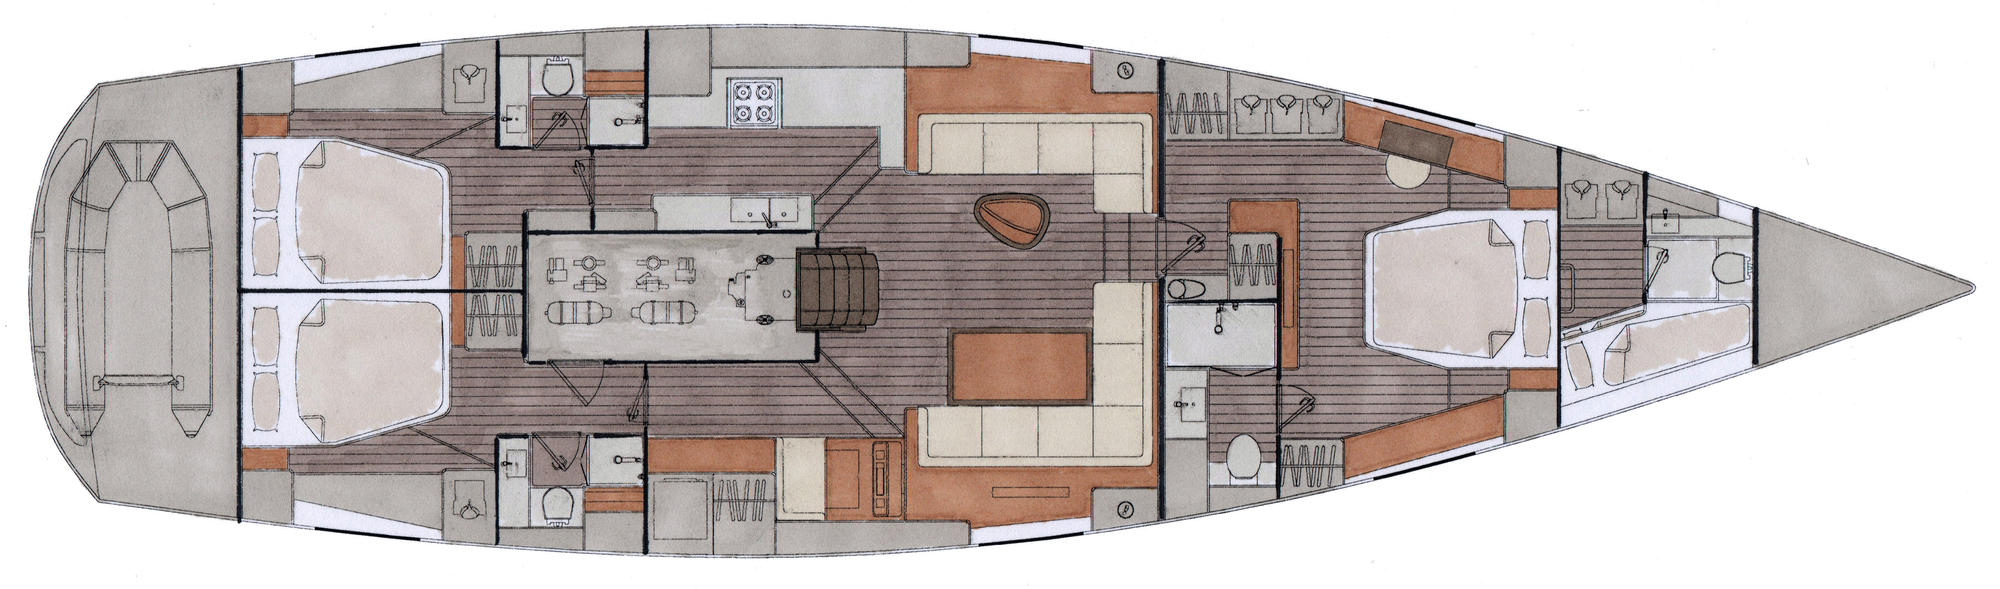 Conyplex Contest 67 CS - contest_67cs_interior_layout_f.jpg